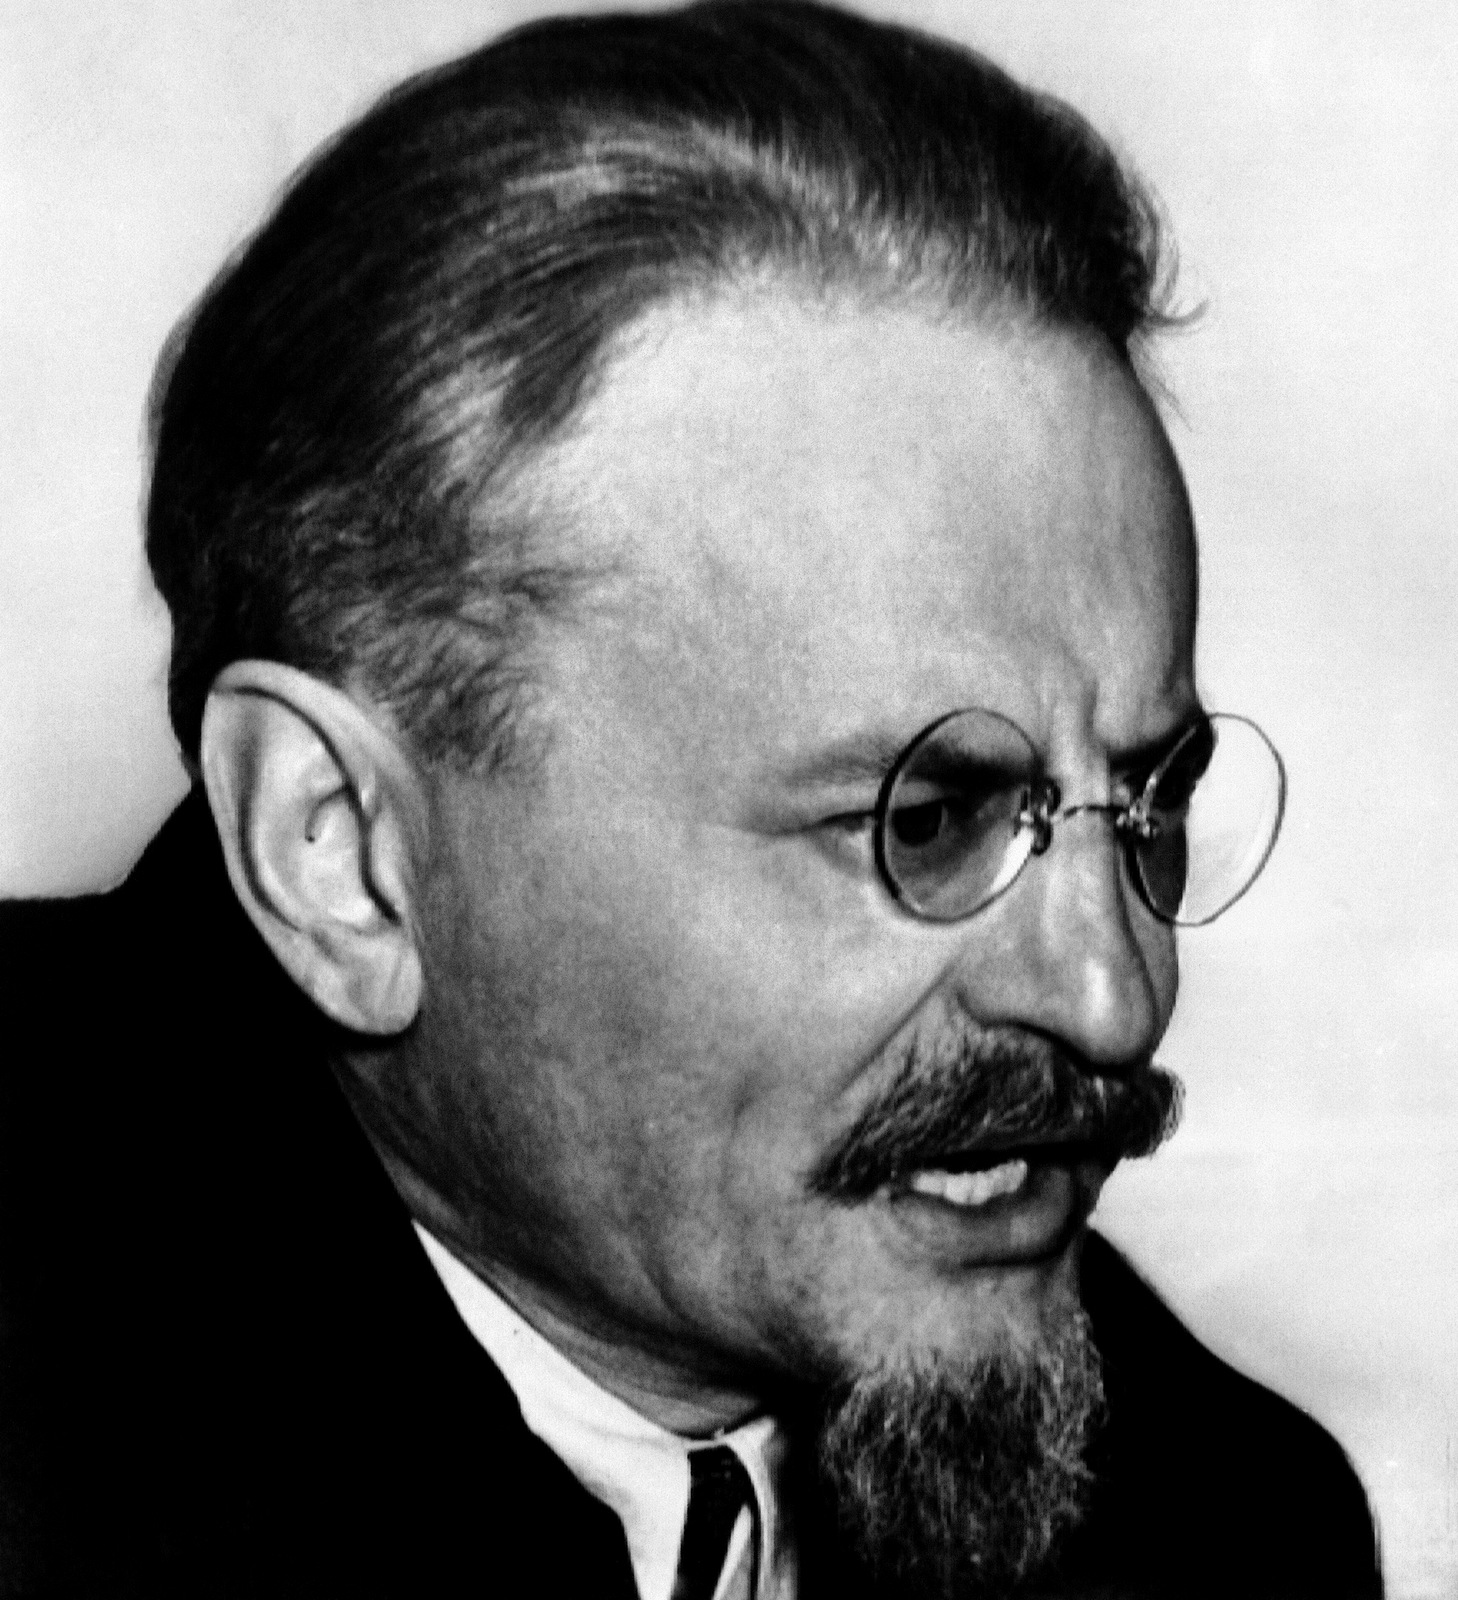 Leon Trotsky, one time Bolshevist interviewed at his villa in Coyocan, Mexico, where he lives and works in exile under heavy guard, March 10, 1937. (AP Photo)